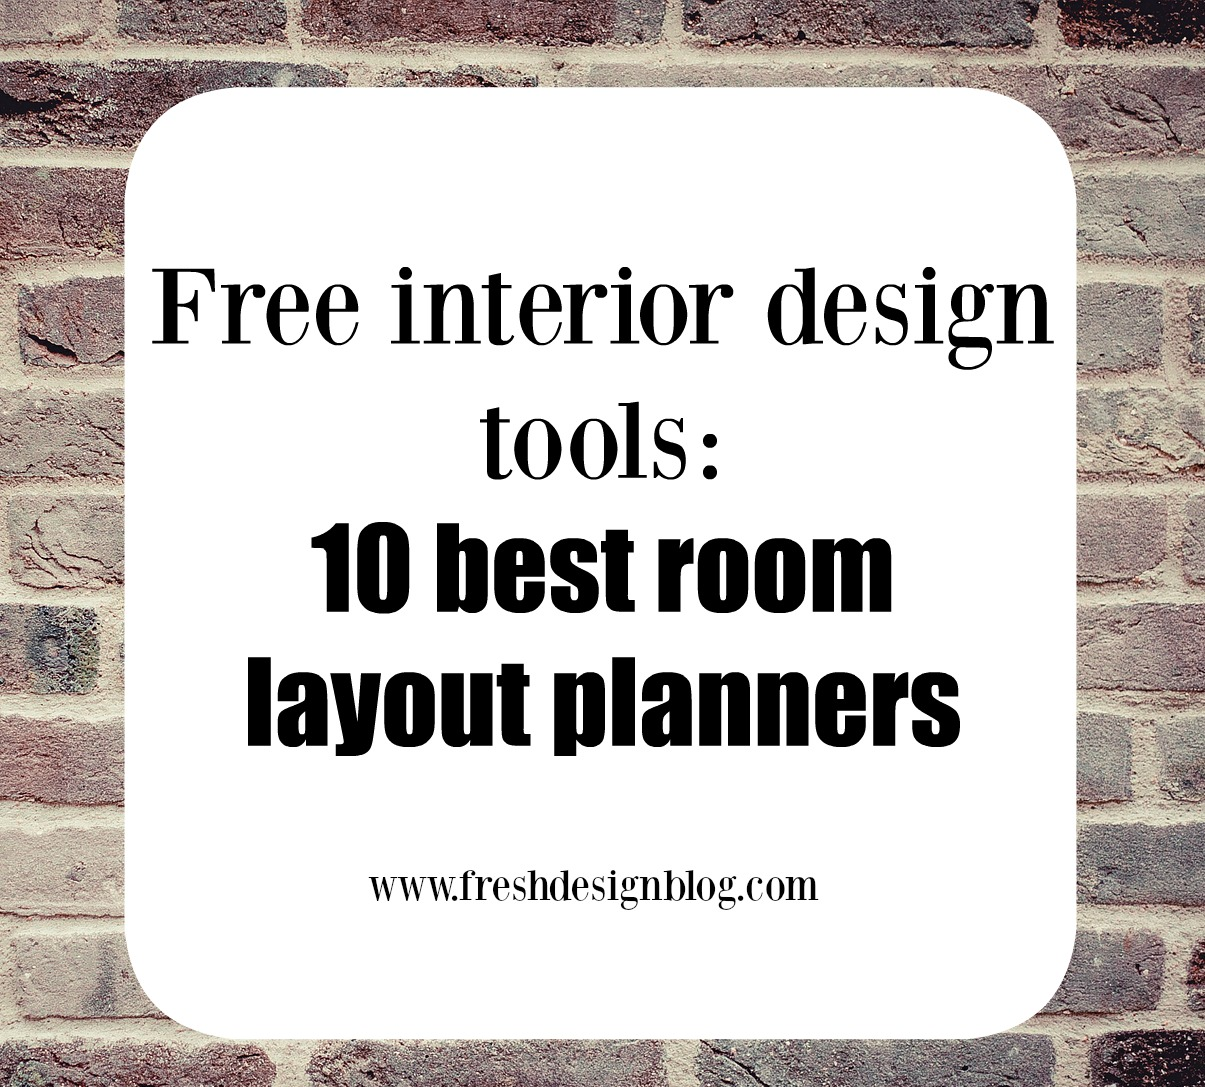 Of The Best Free Online Room Layout Planner Tools - Luxury estate planning templates design